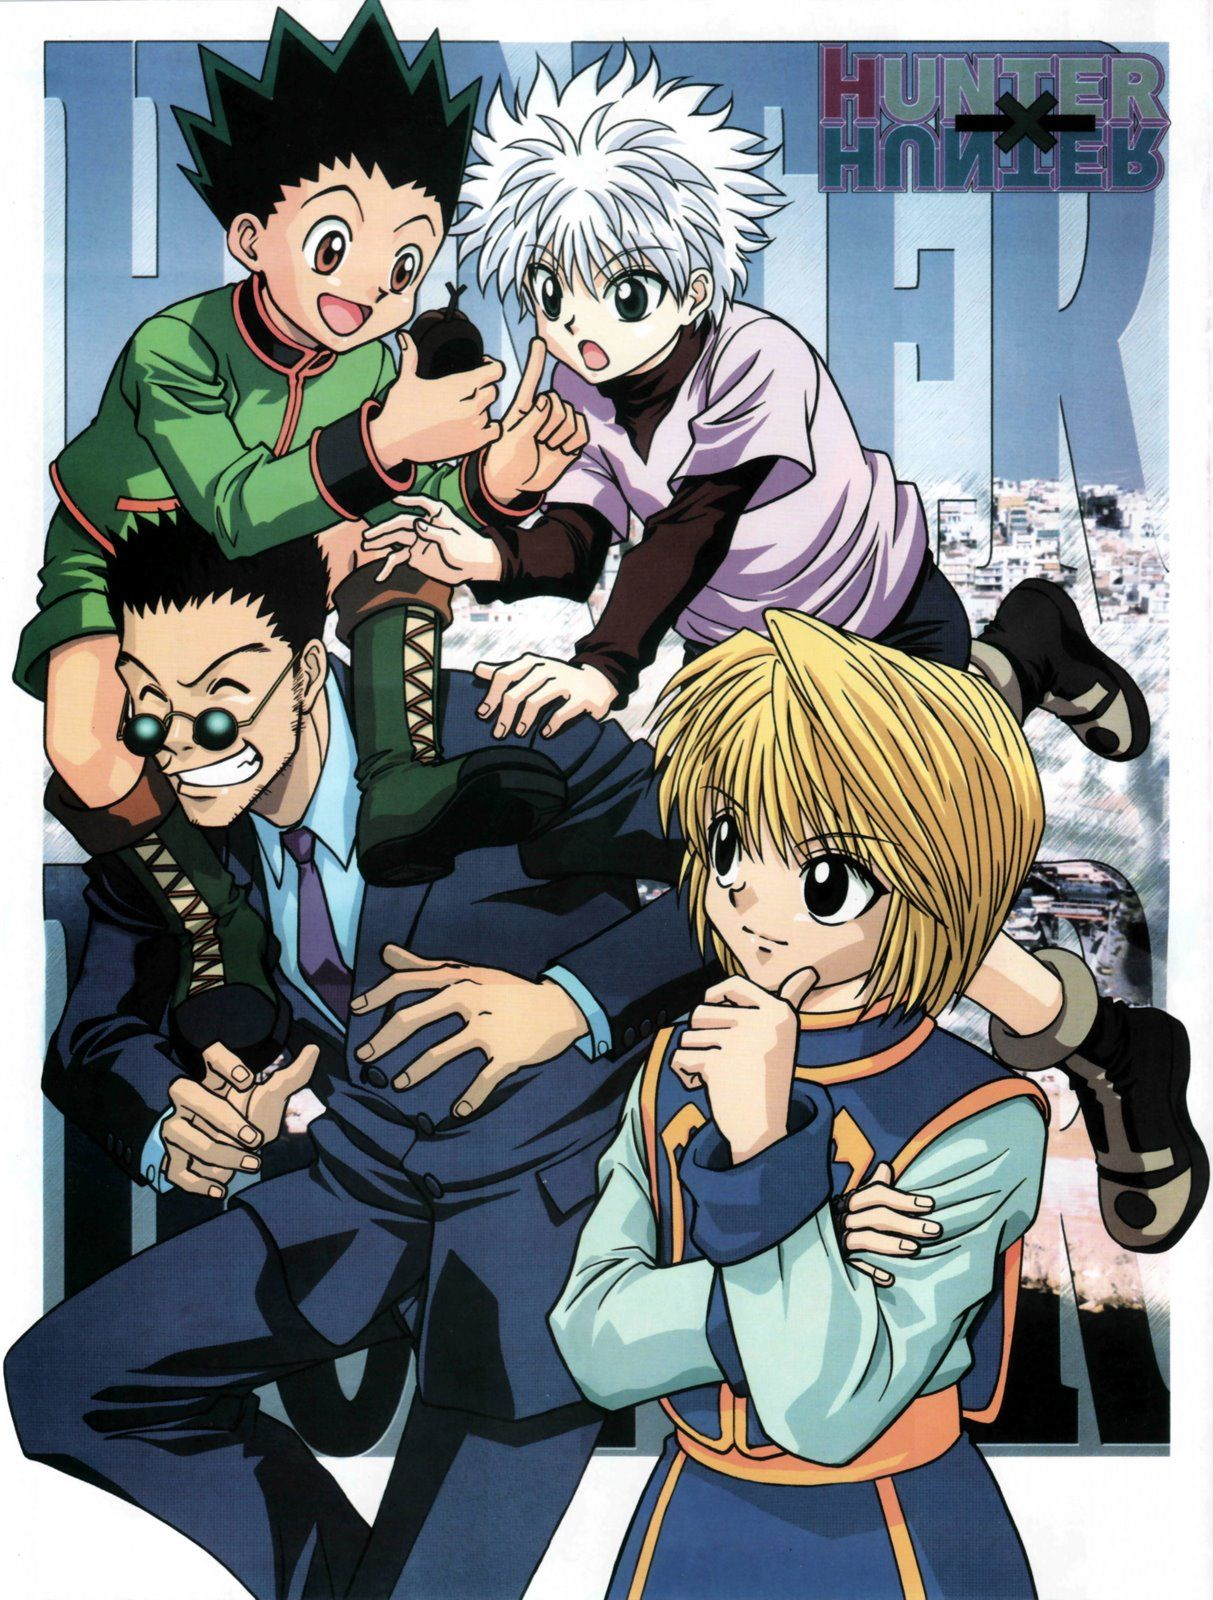 Pin By Marianna Willis On Kurapika X Hxh With Images Hunter X